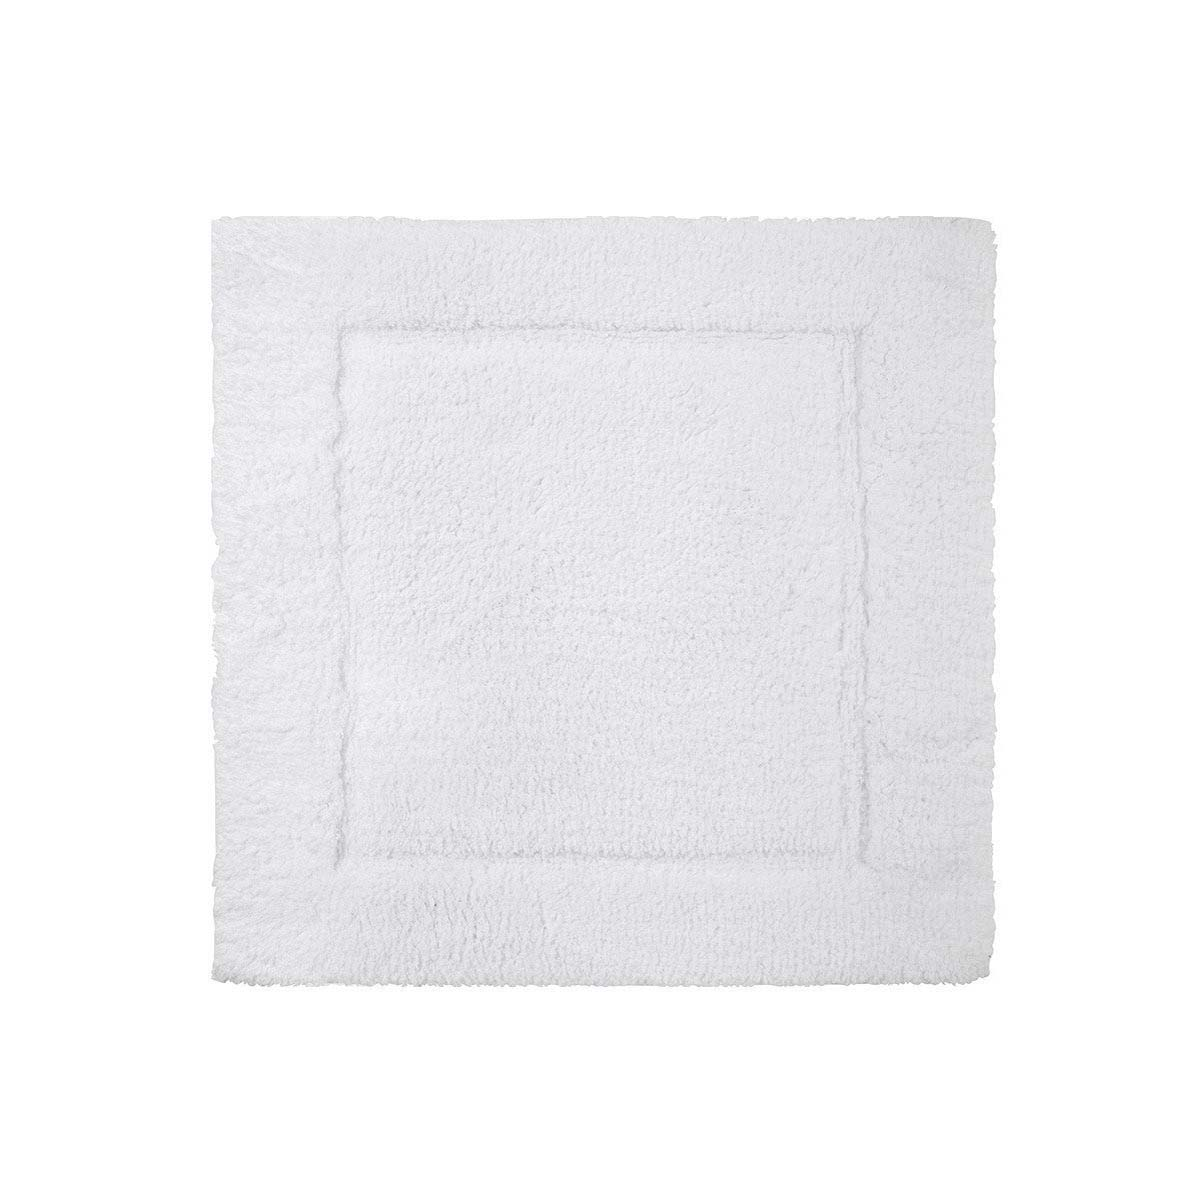 ring and towels spun ply collection product tesino combed towel cotton bath mat mats